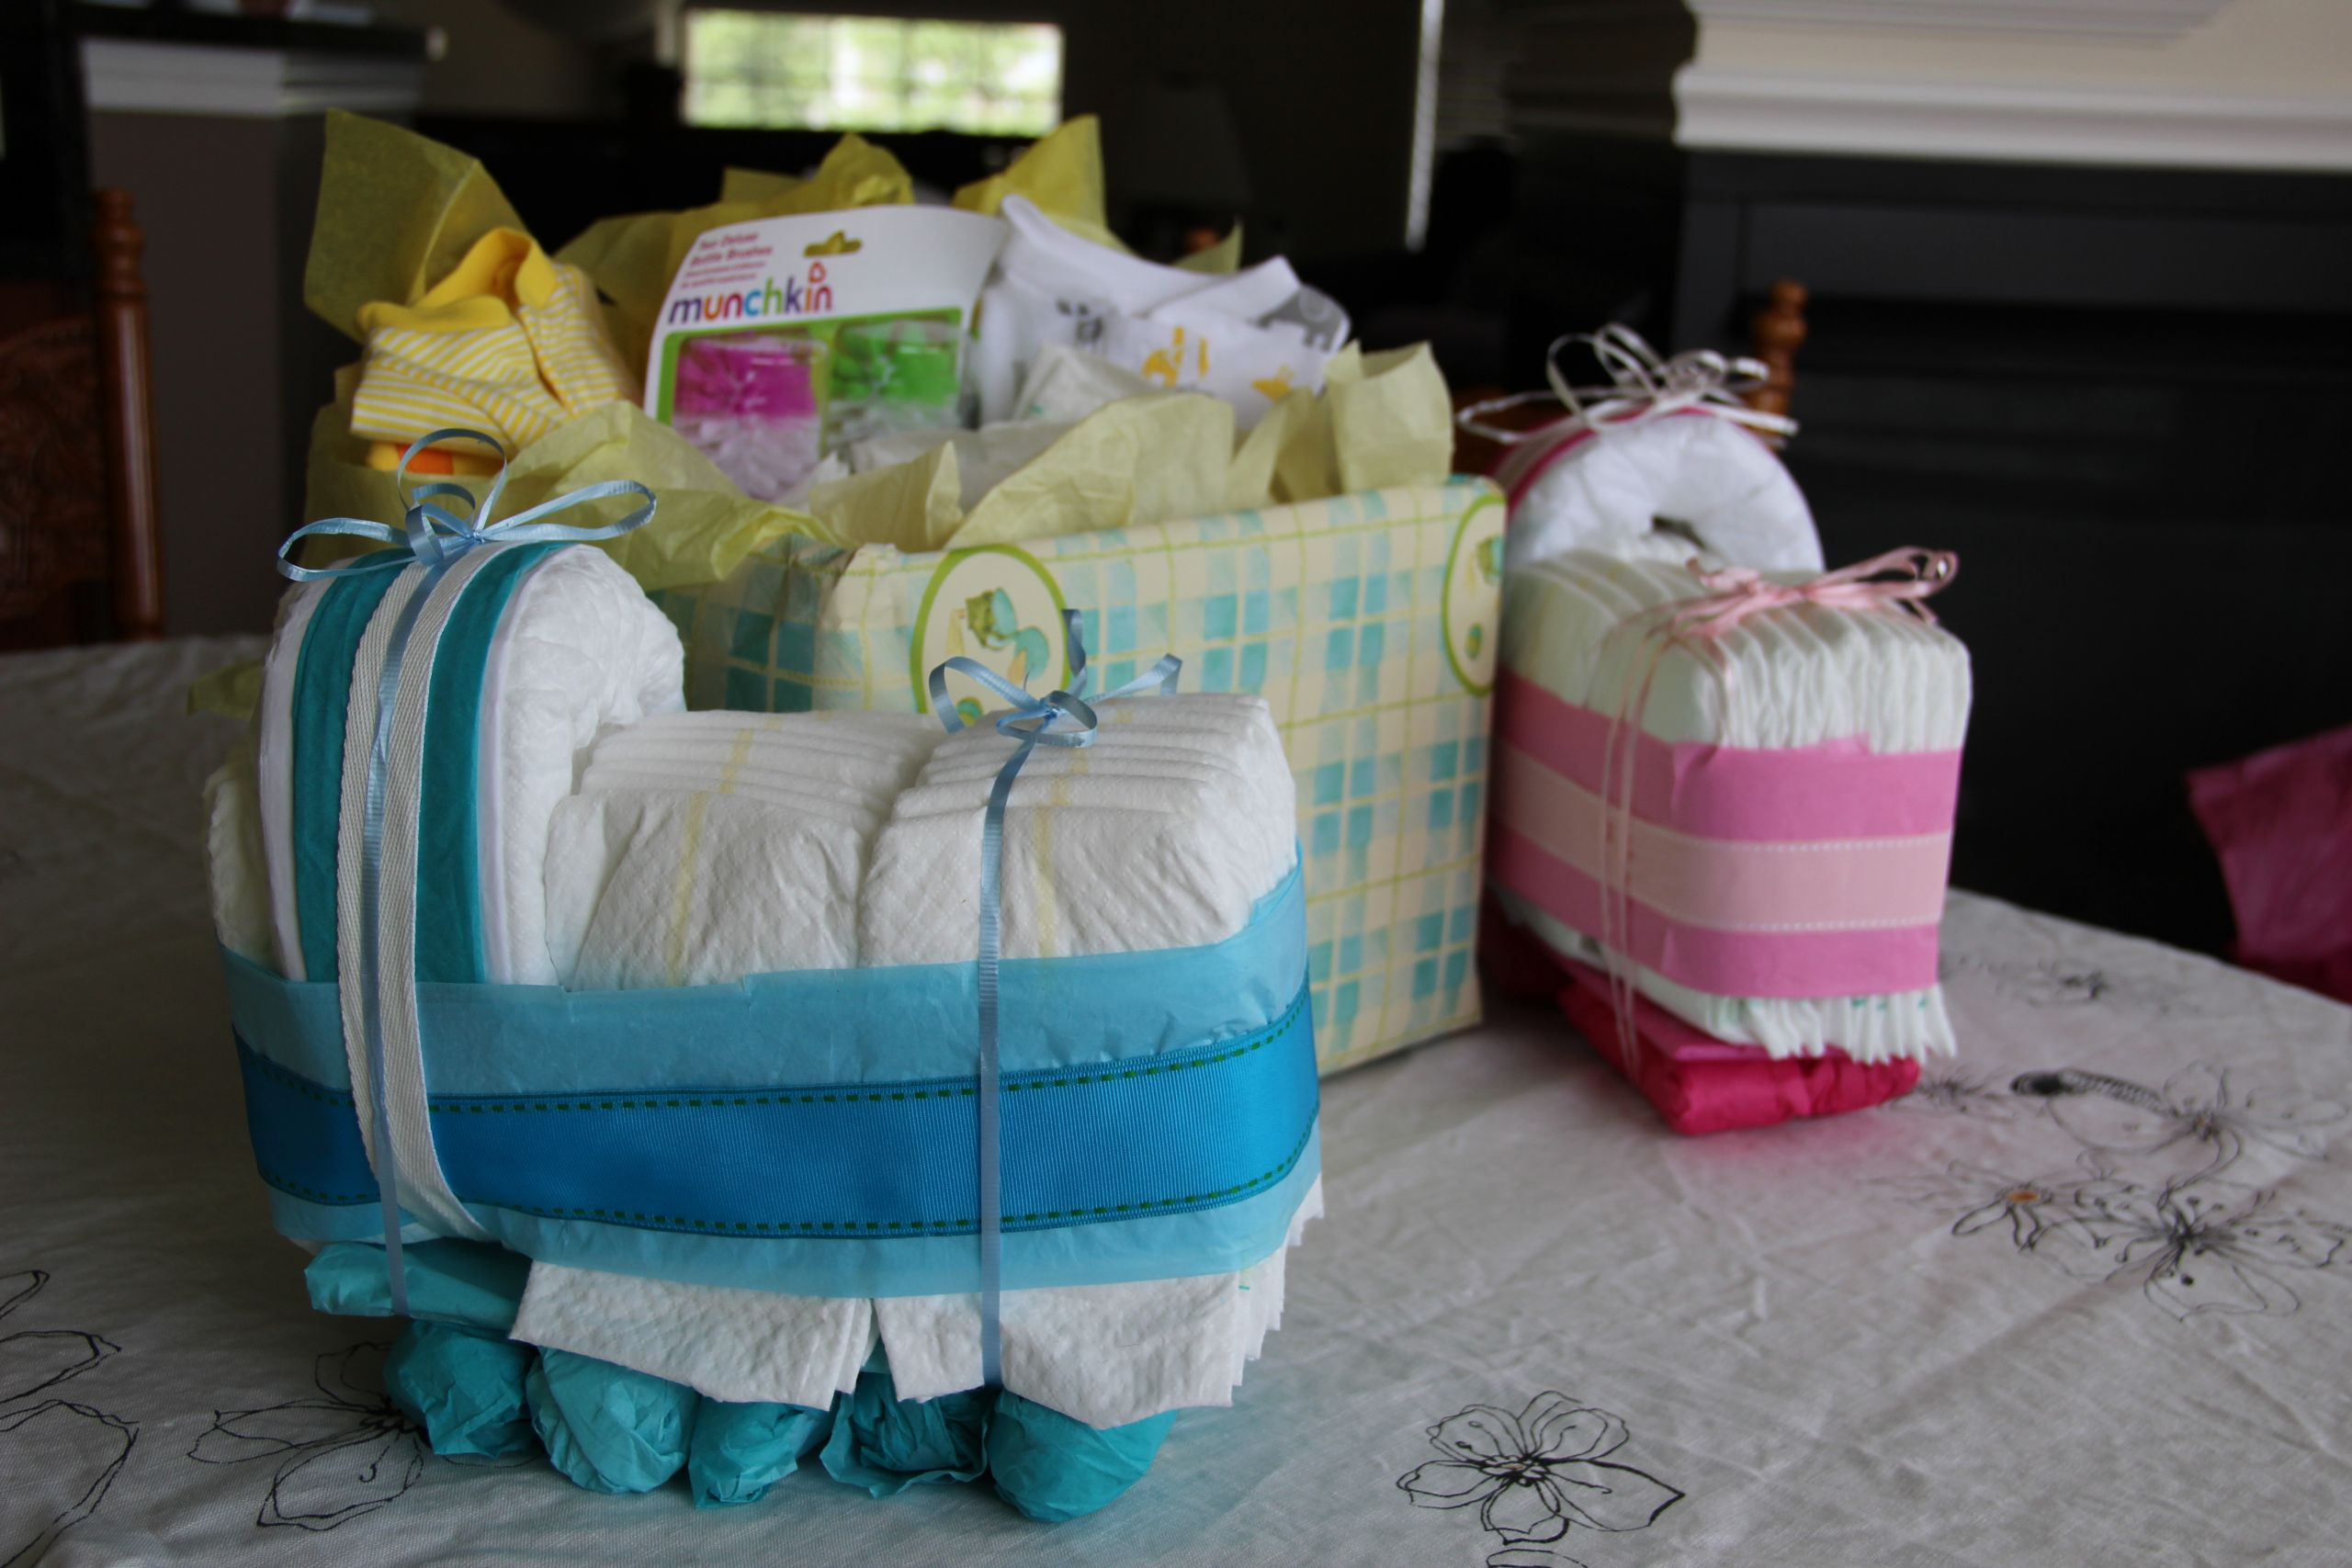 Unique Baby Shower Gift Ideas Pinterest  The Importance of Being Cleveland